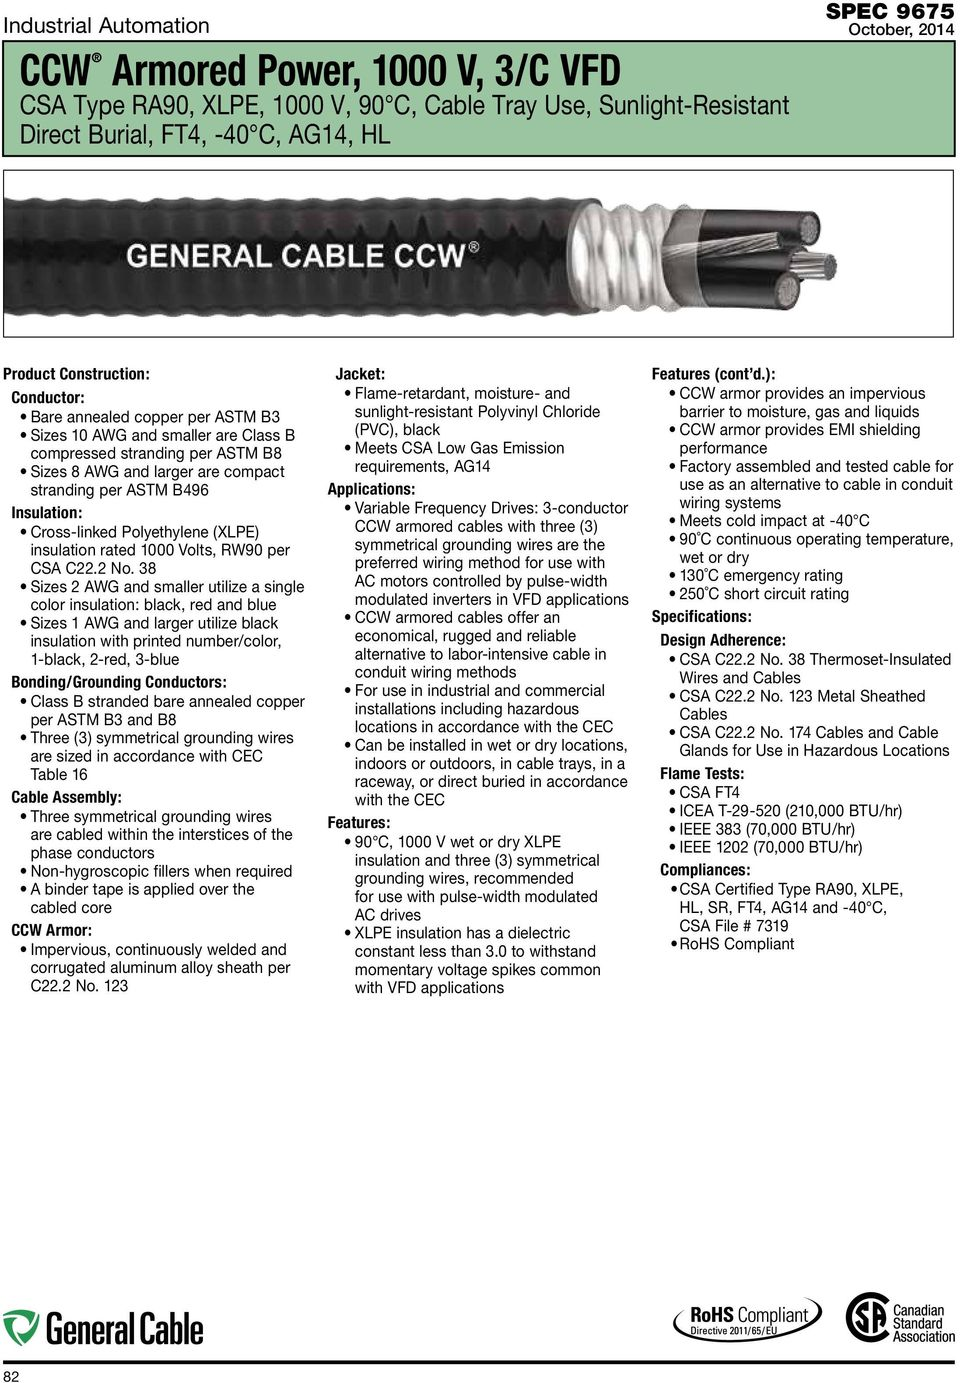 Industrial Cable Solutions for Variable Frequency Drives - PDF